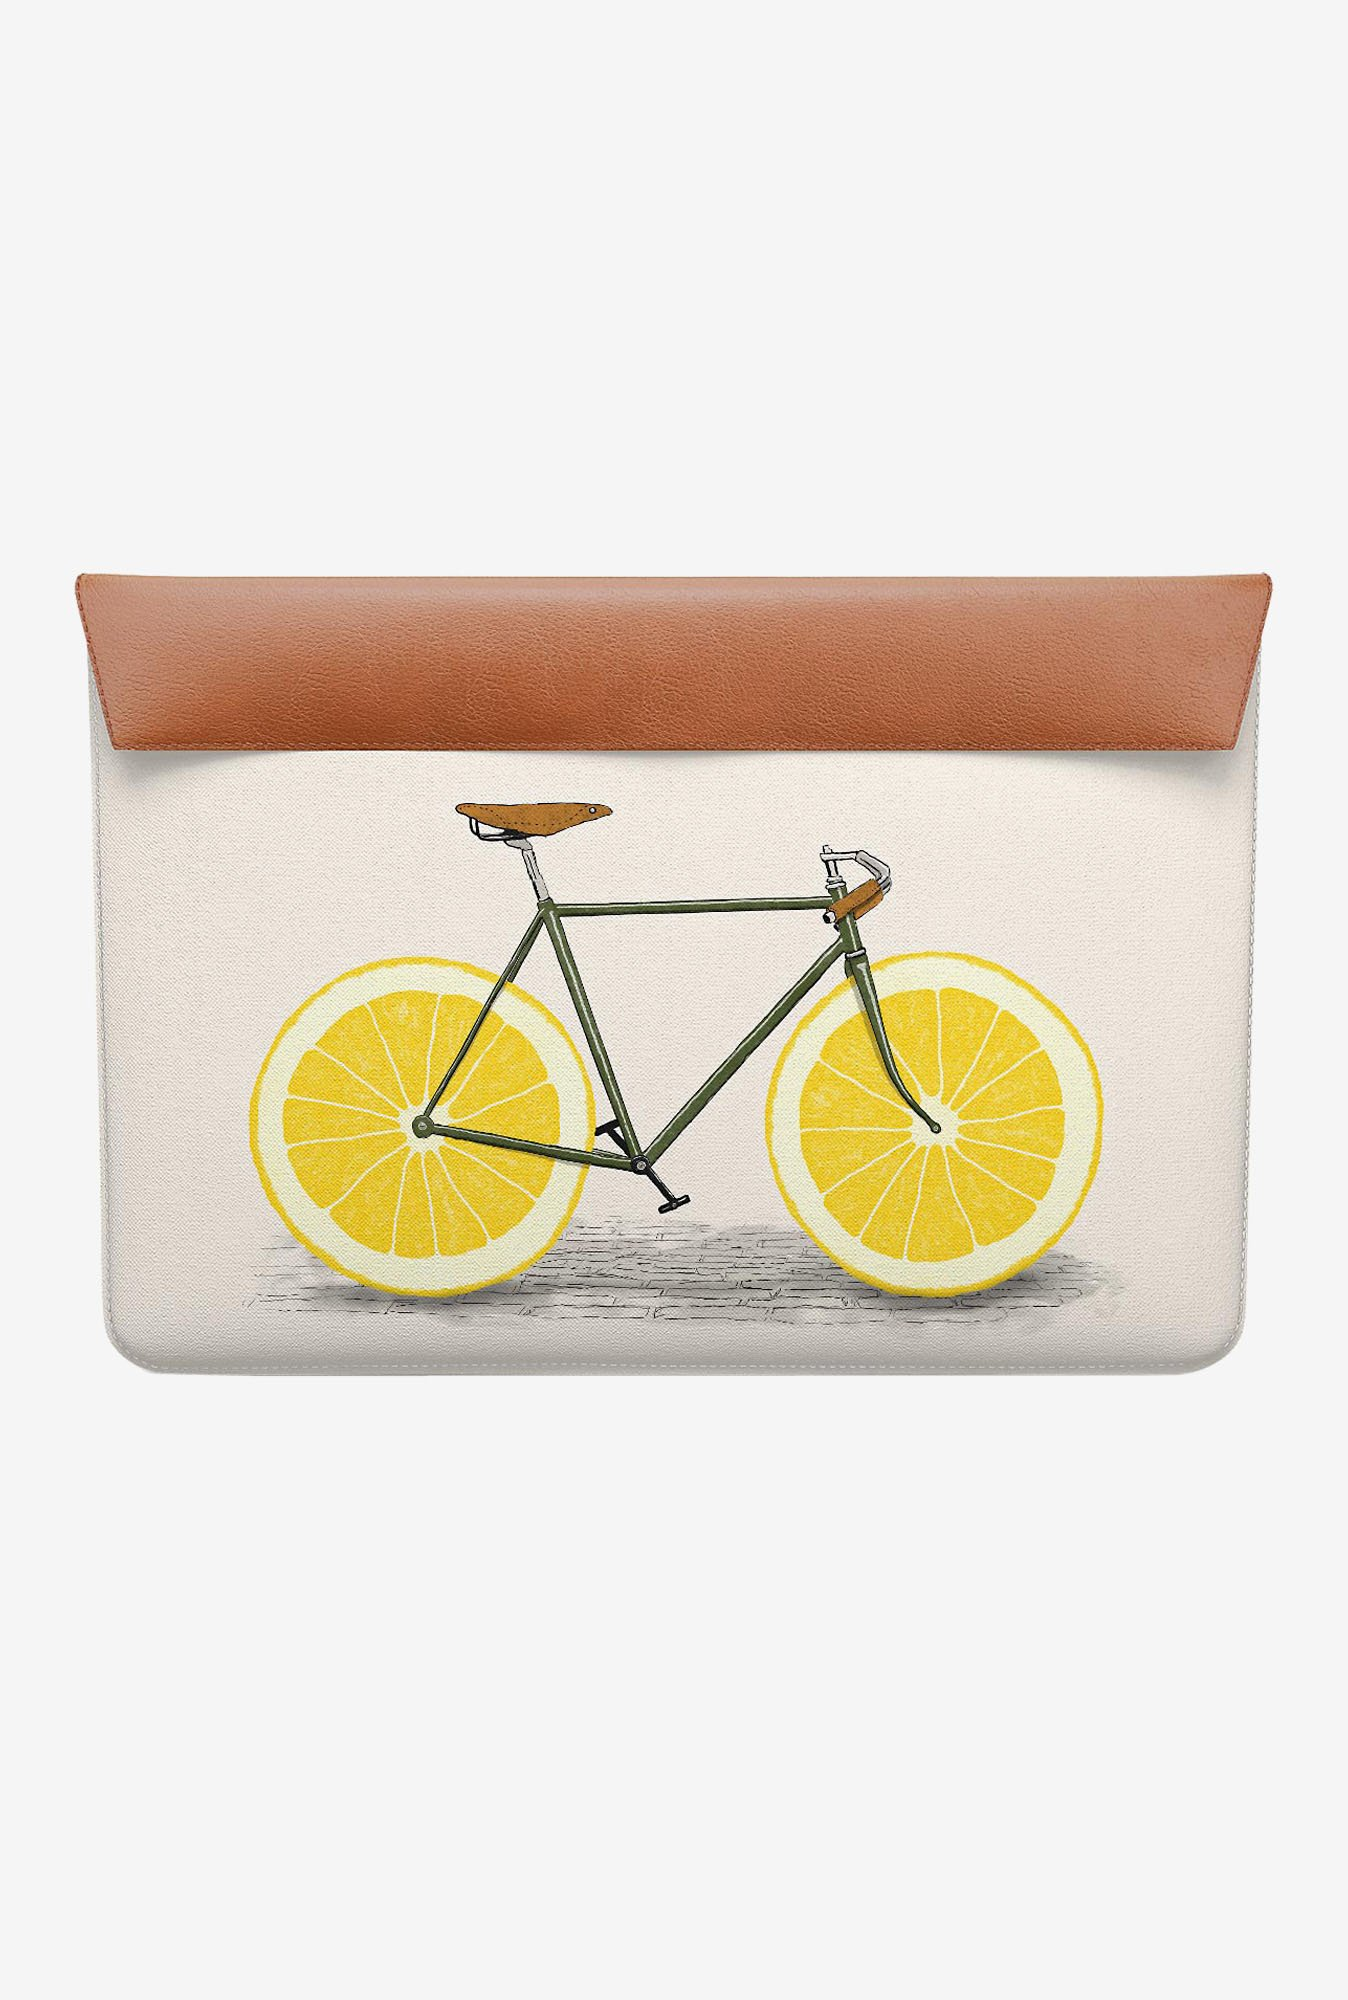 DailyObjects Yellow Wheels MacBook Pro 13 Envelope Sleeve